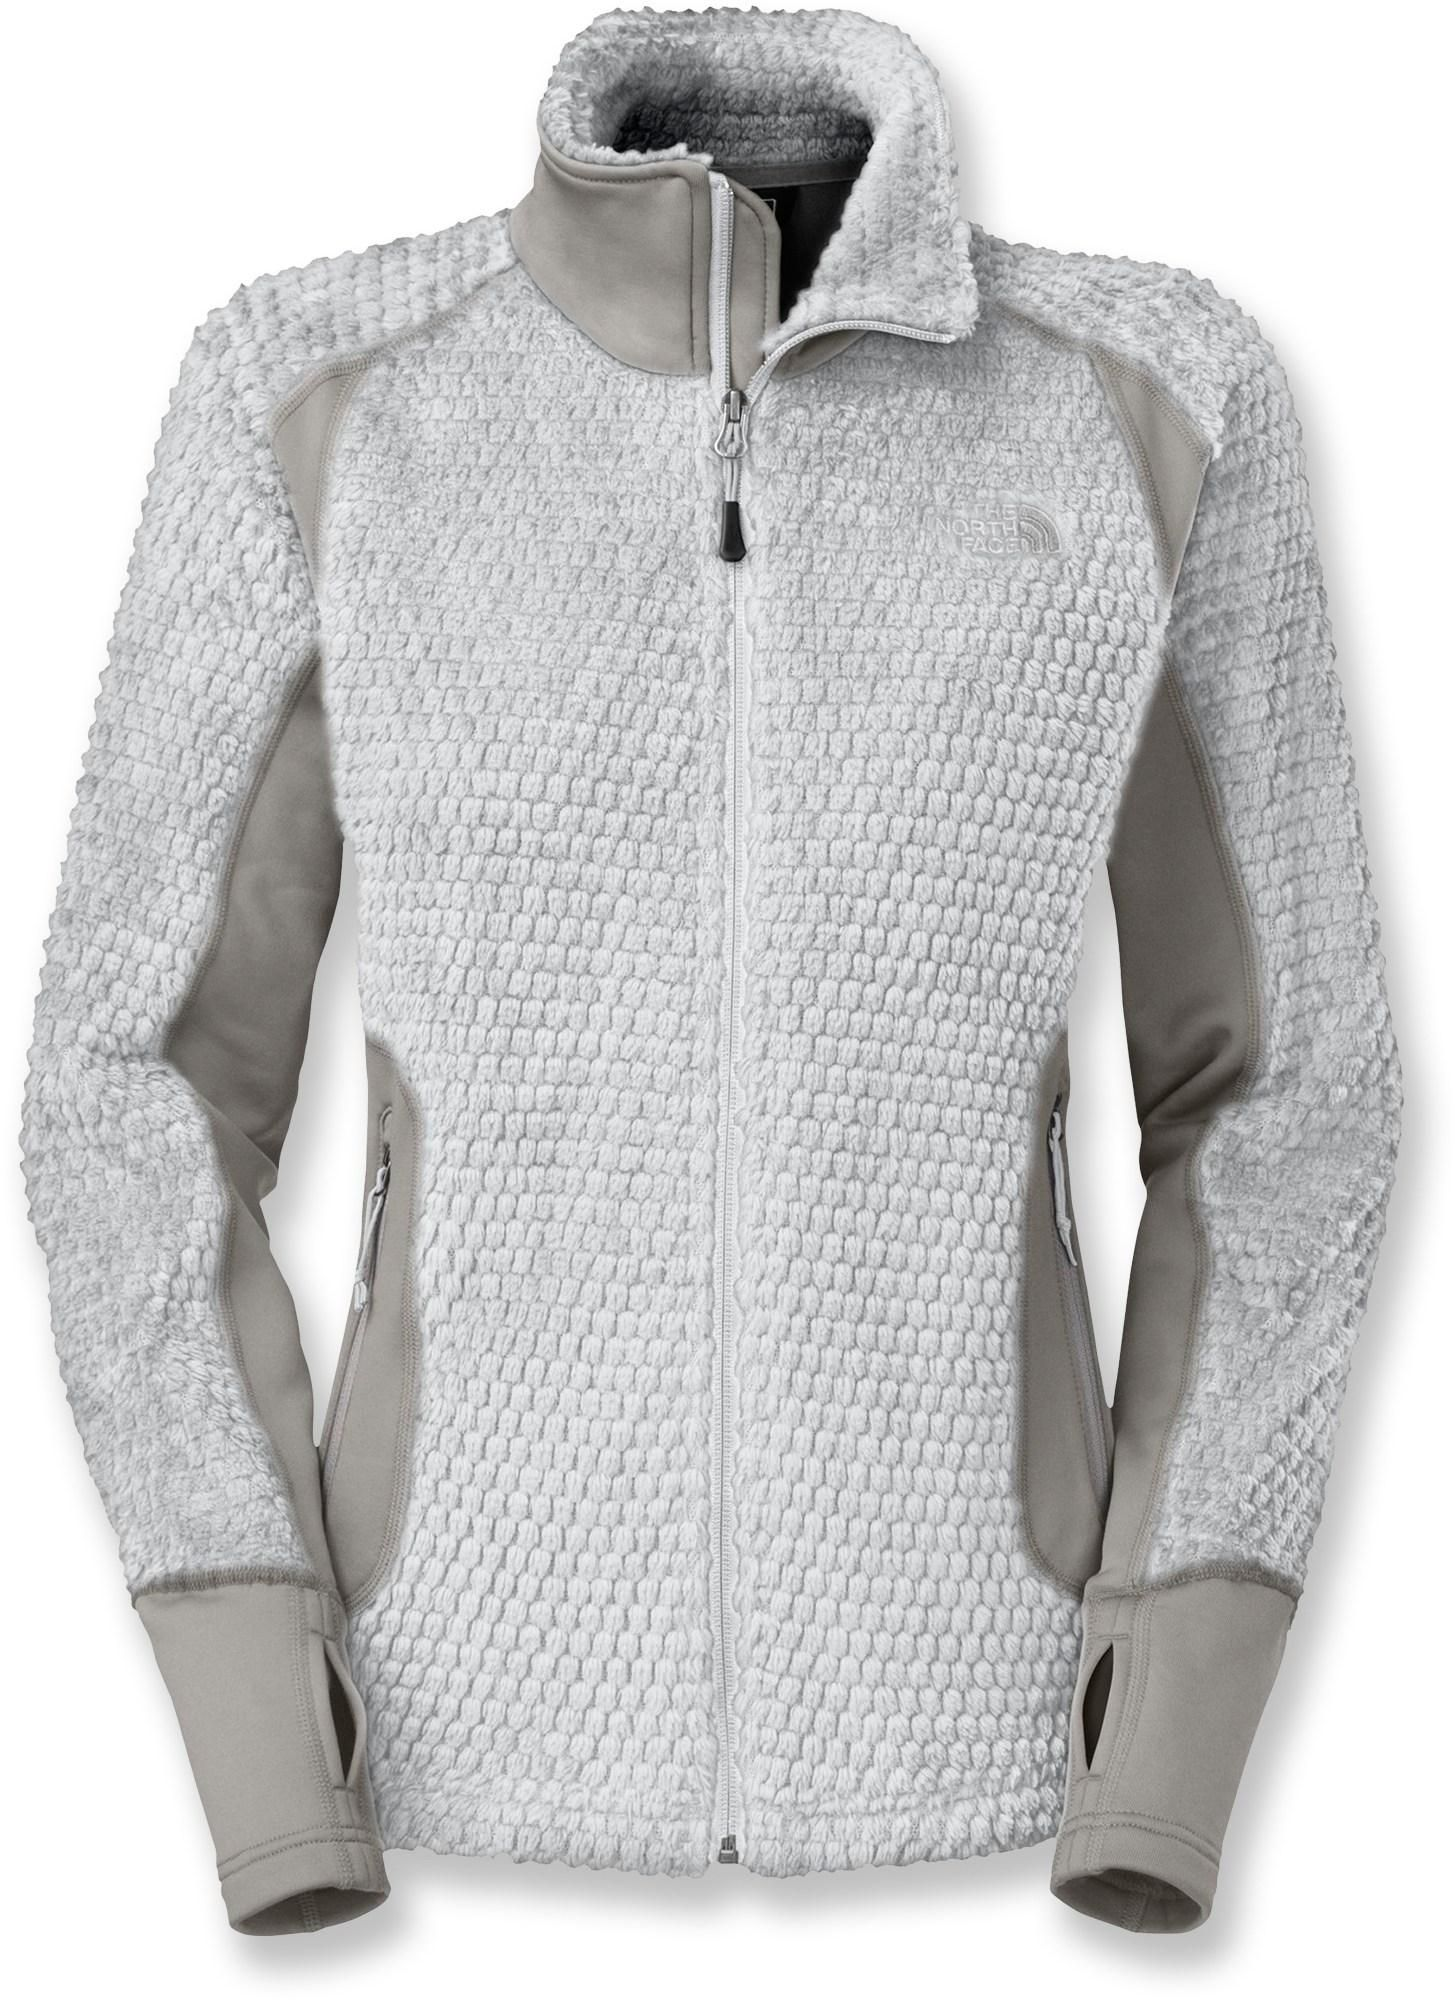 The North Face Grizzly Pack Jacket - Women's | REI Co-op ...